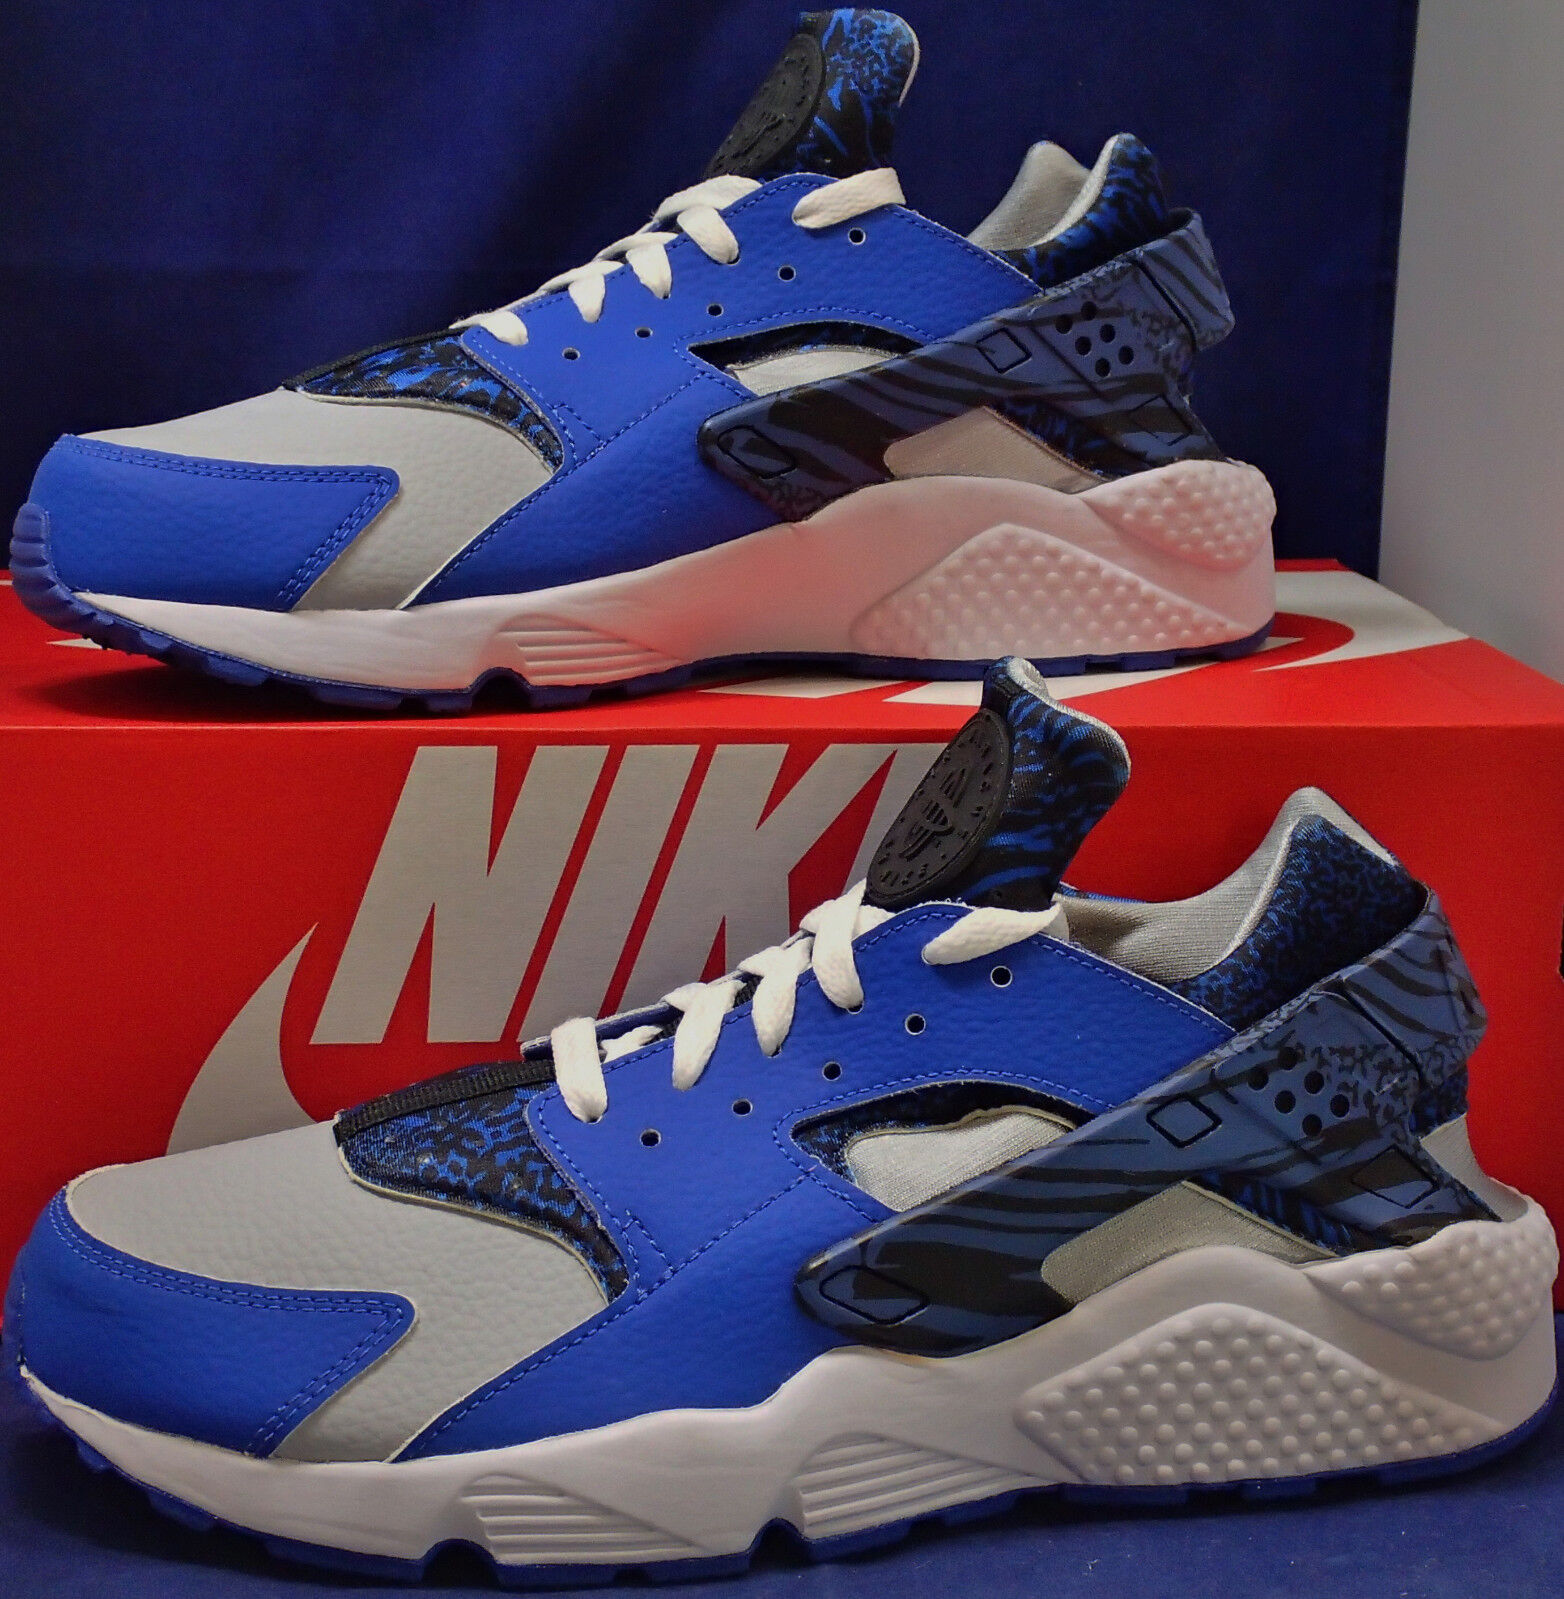 Nike Air Huarache Run iD Blue Light Grey White Price reduction New shoes for men and women, limited time discount